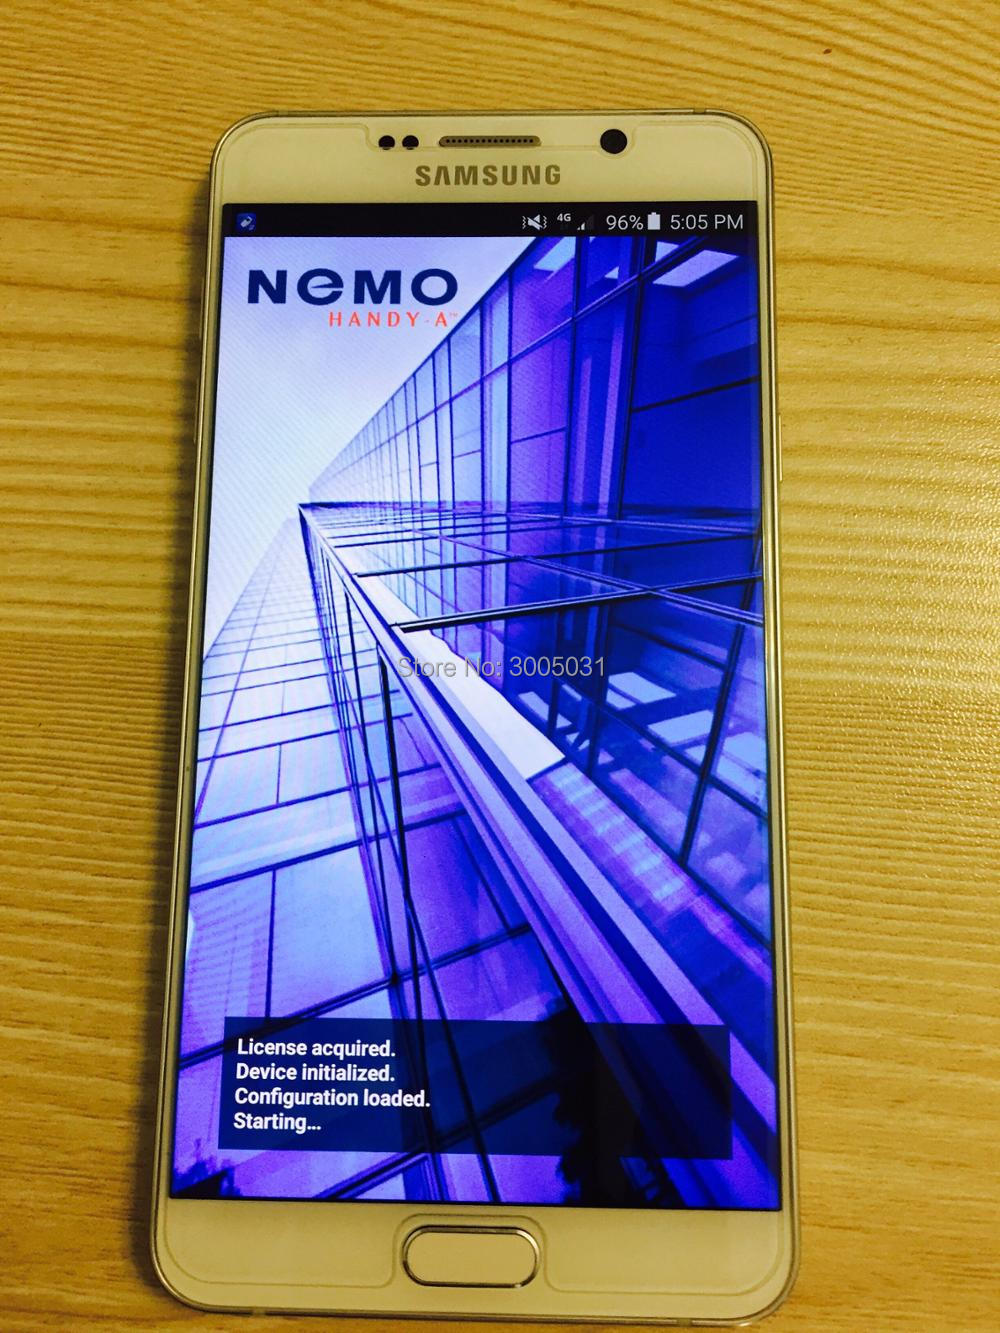 note5 N920I nemo handy & Note5 N920i NMR , support 2CA & 3CA , volte ,polqa and qesq MOS .. ect test+ Free ship